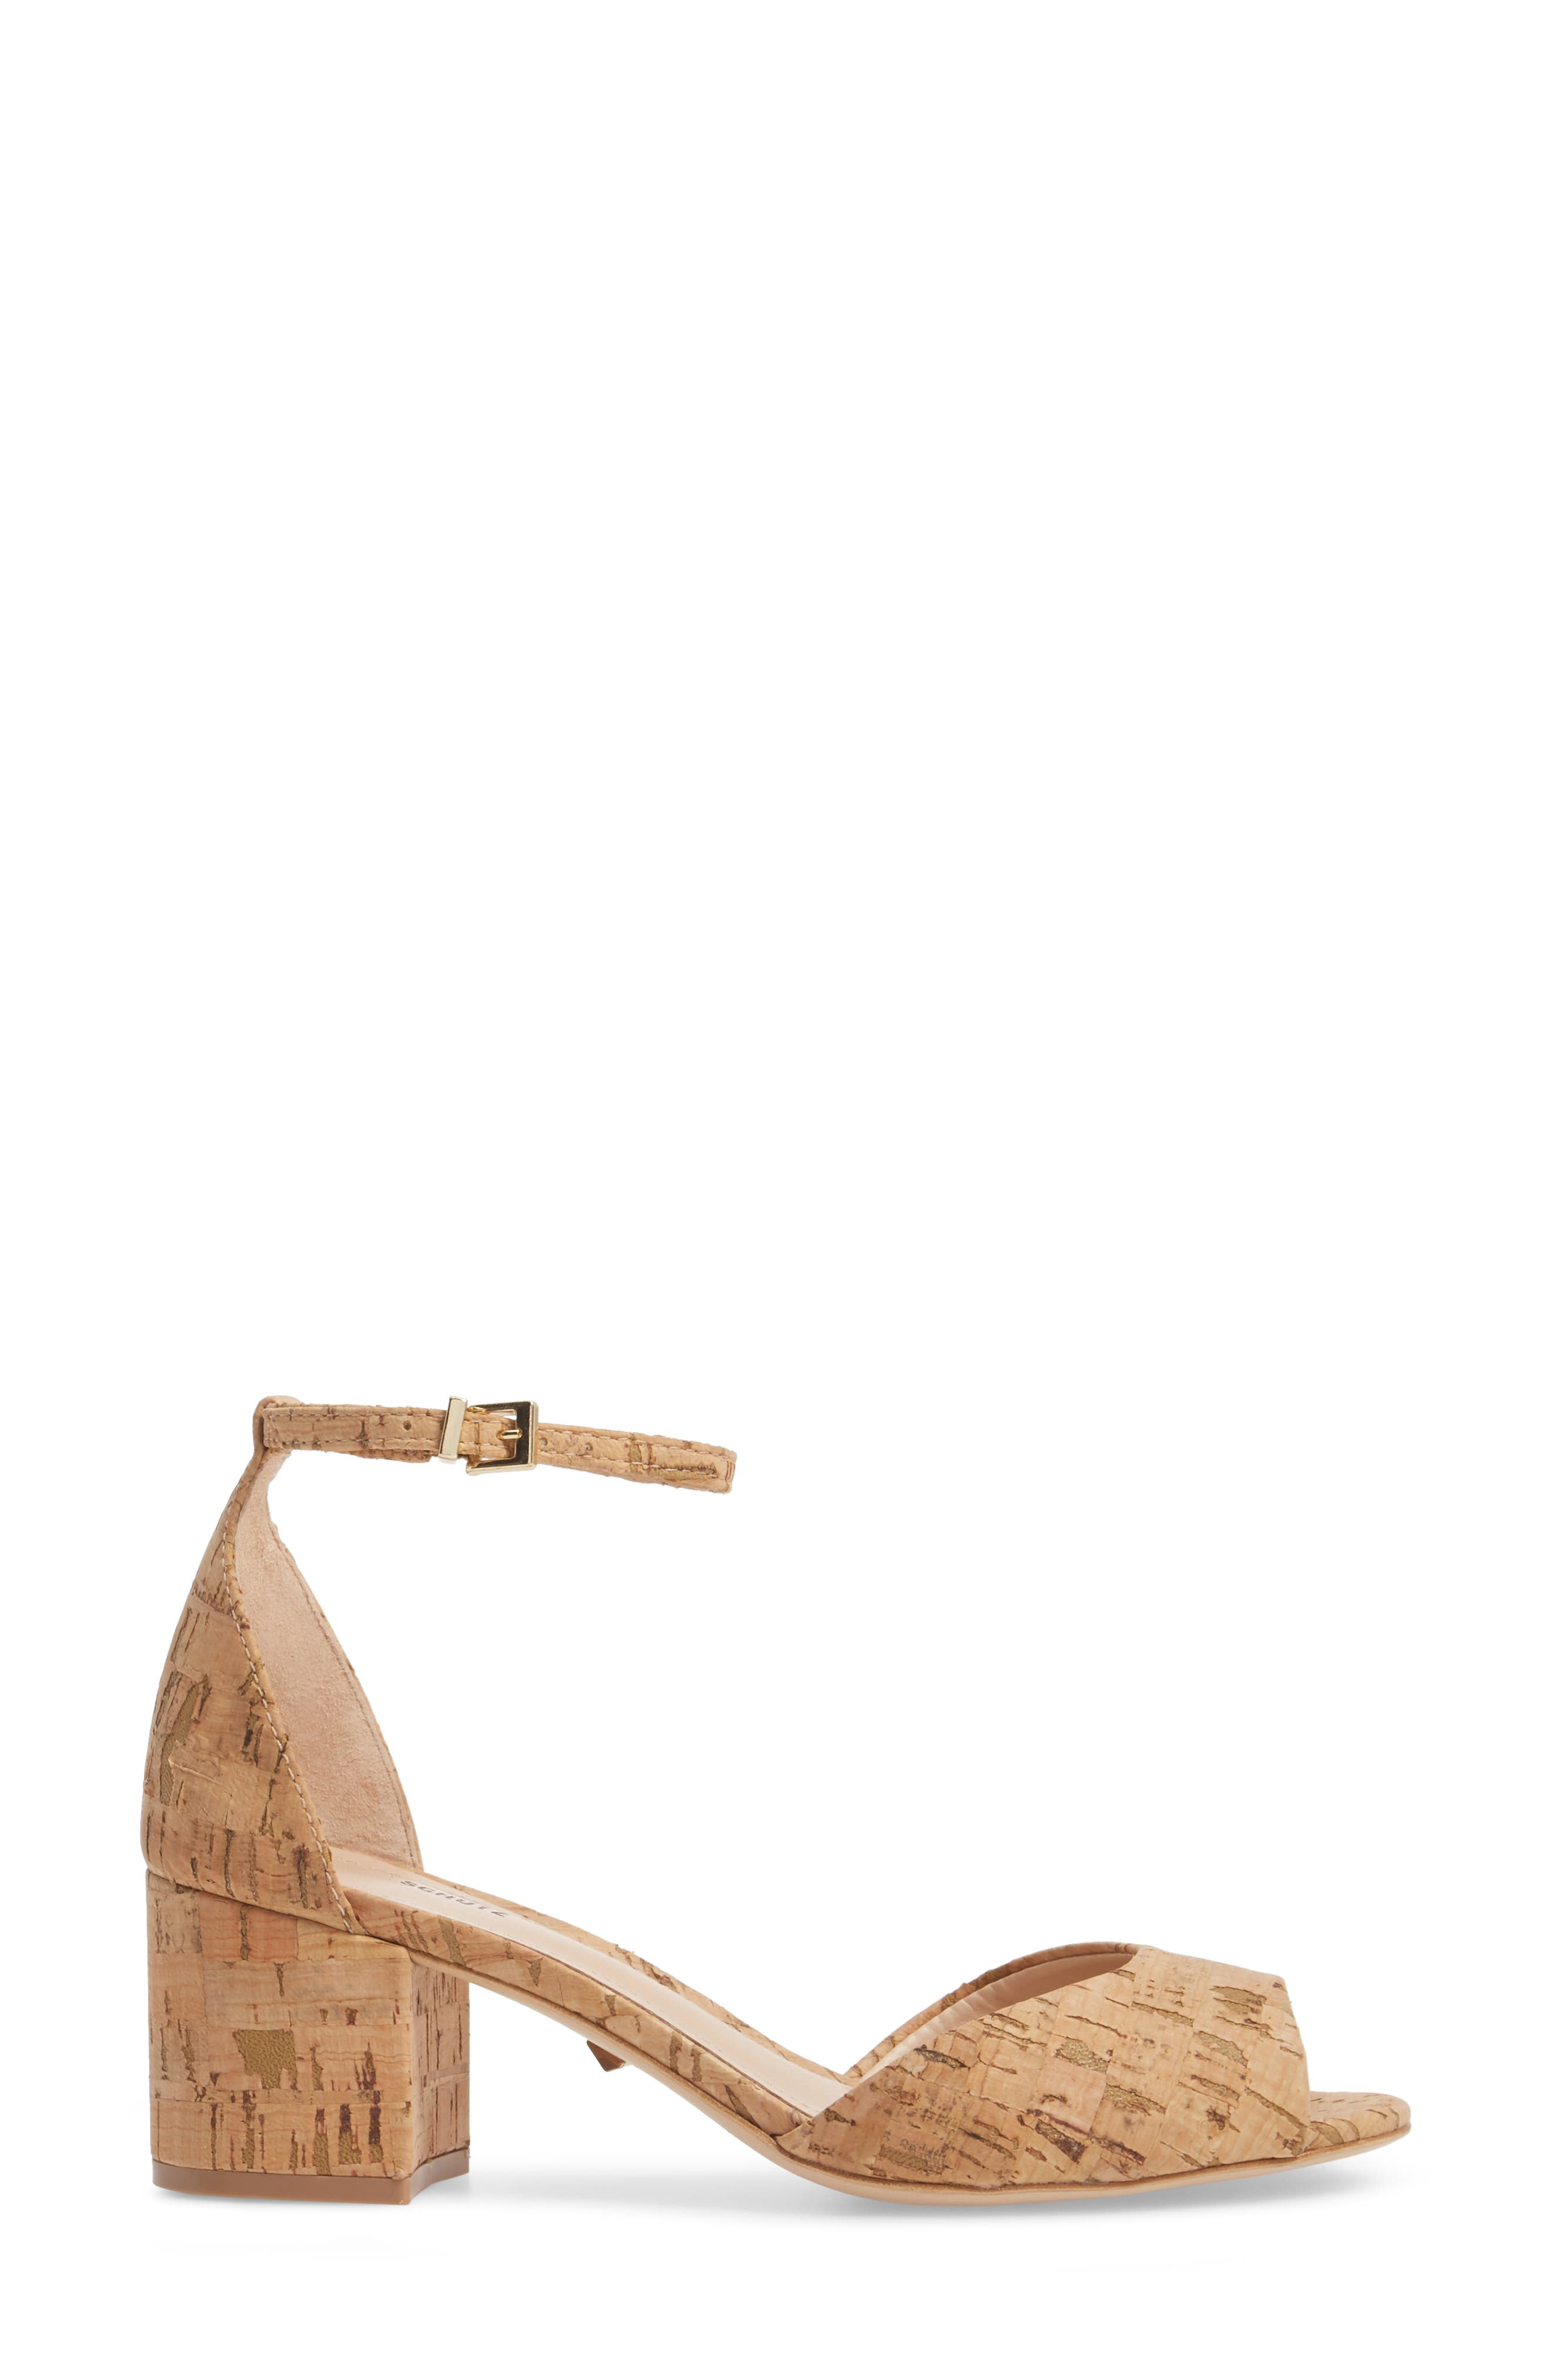 Roama Block Heel Sandal,                             Alternate thumbnail 3, color,                             Natural